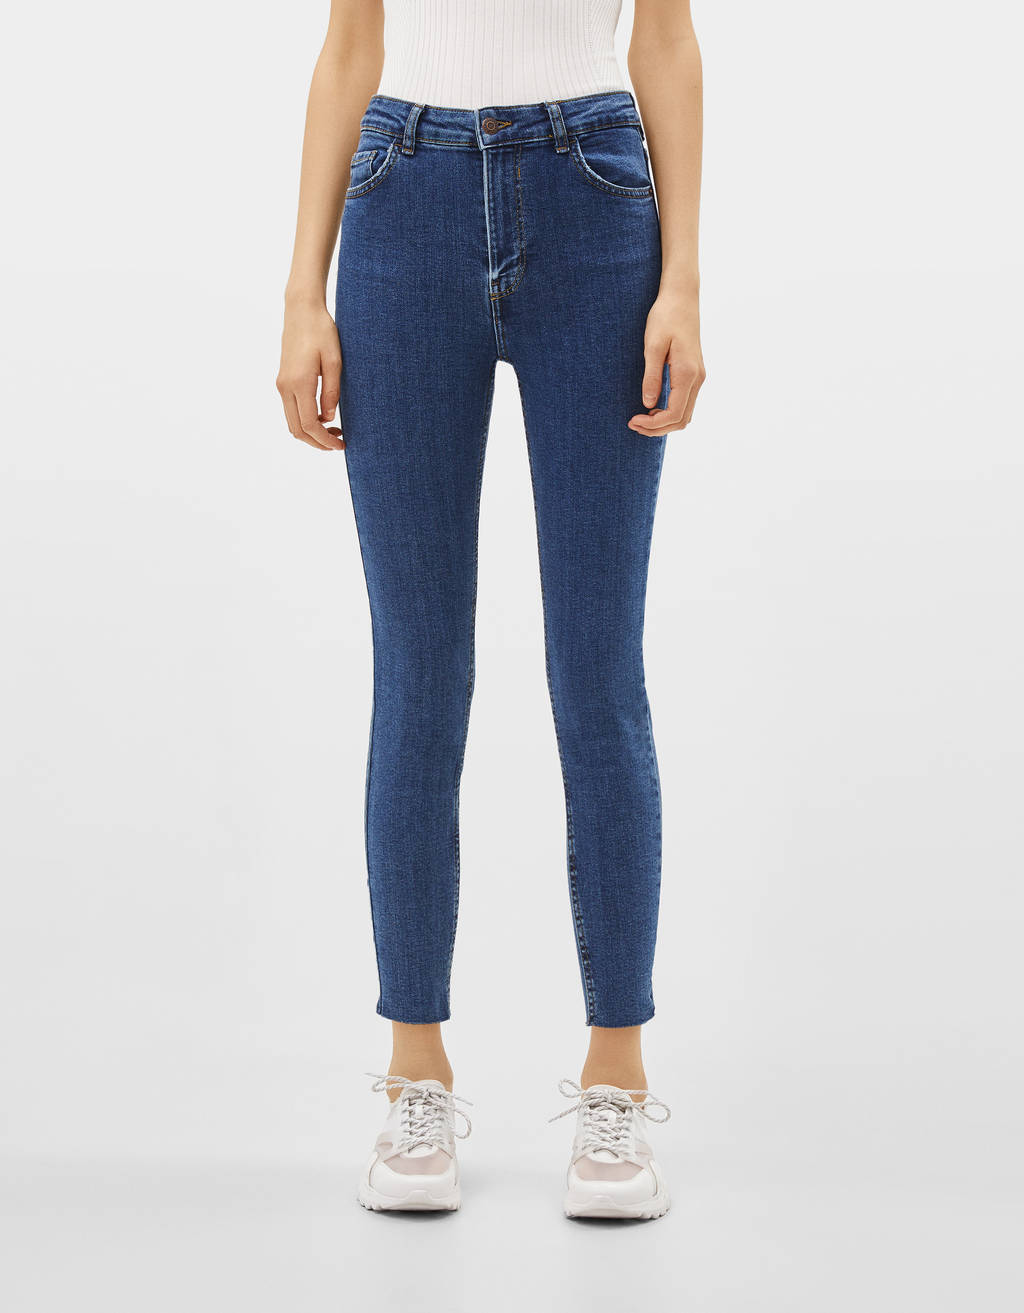 Jeans Skinny Super High Waist cropped